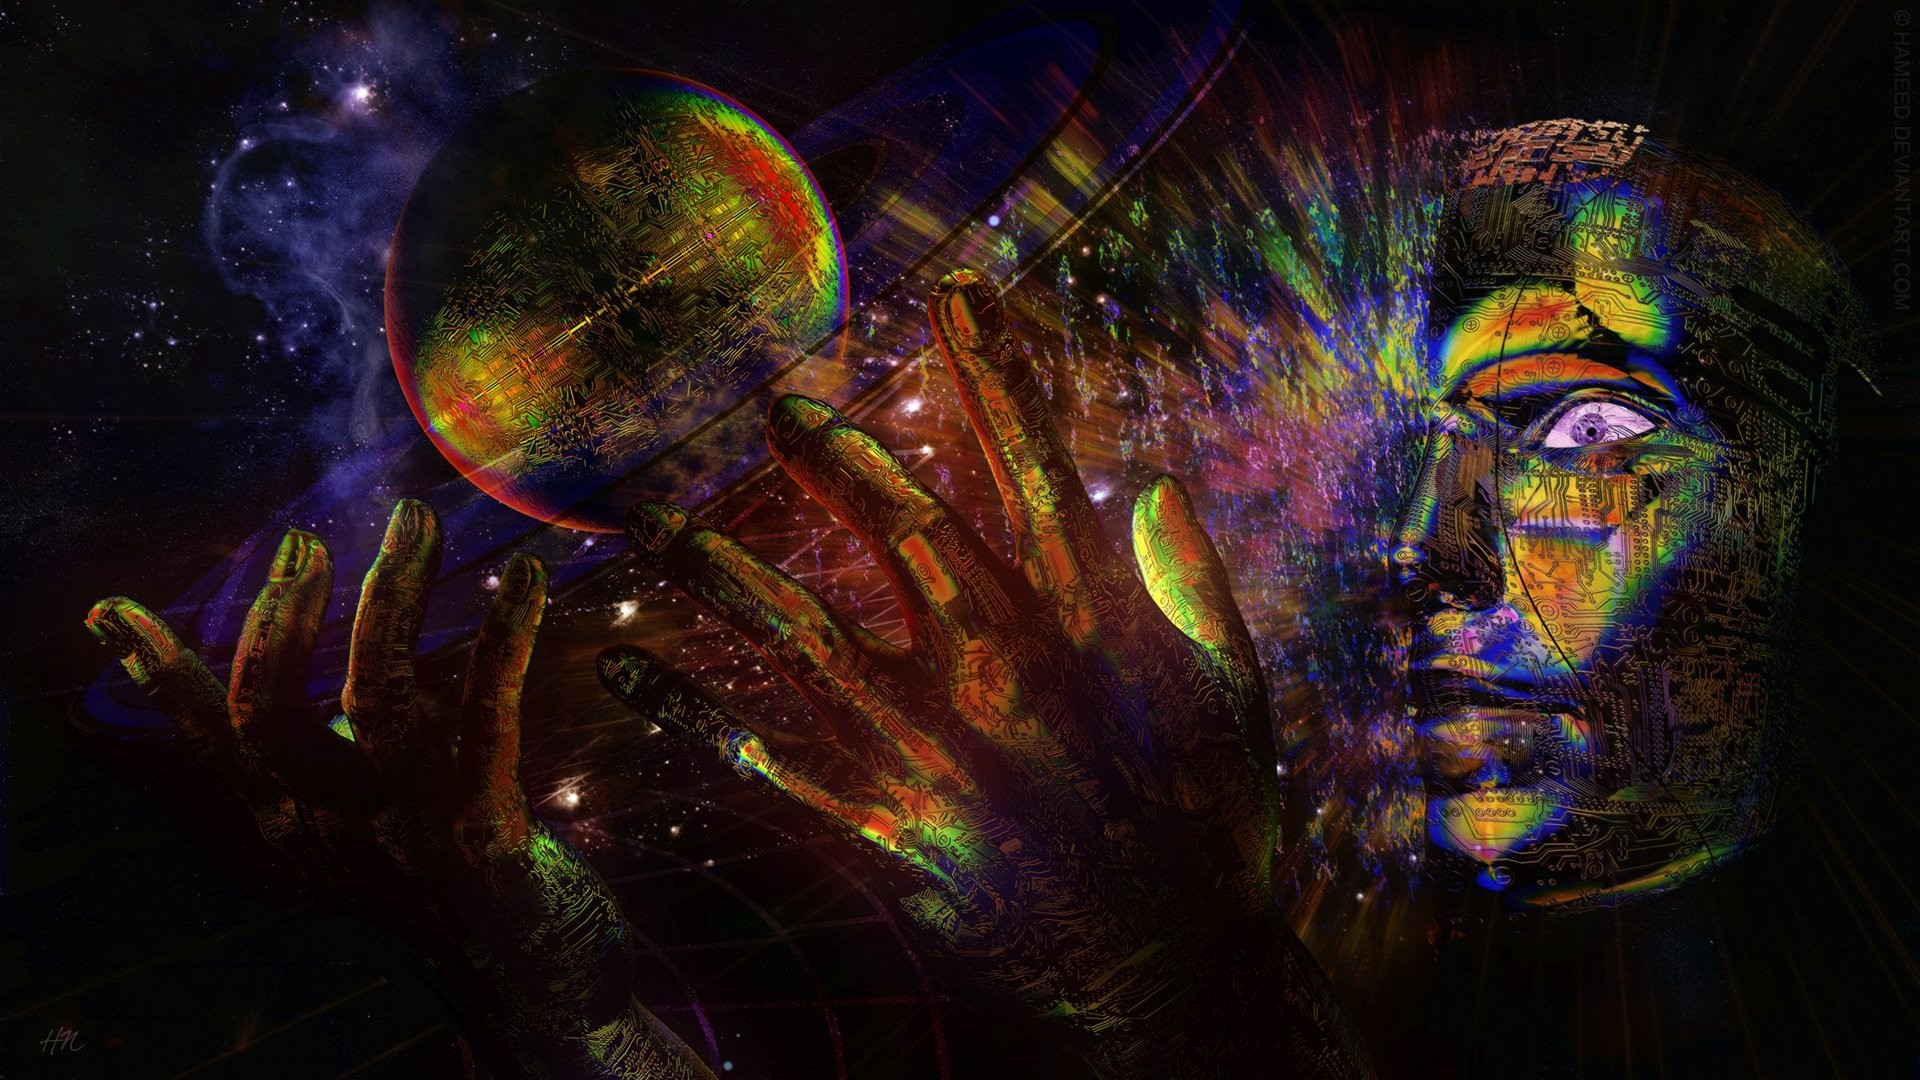 Res: 1920x1080, HD Wallpaper | Background Image ID:235341.  Artistic Psychedelic